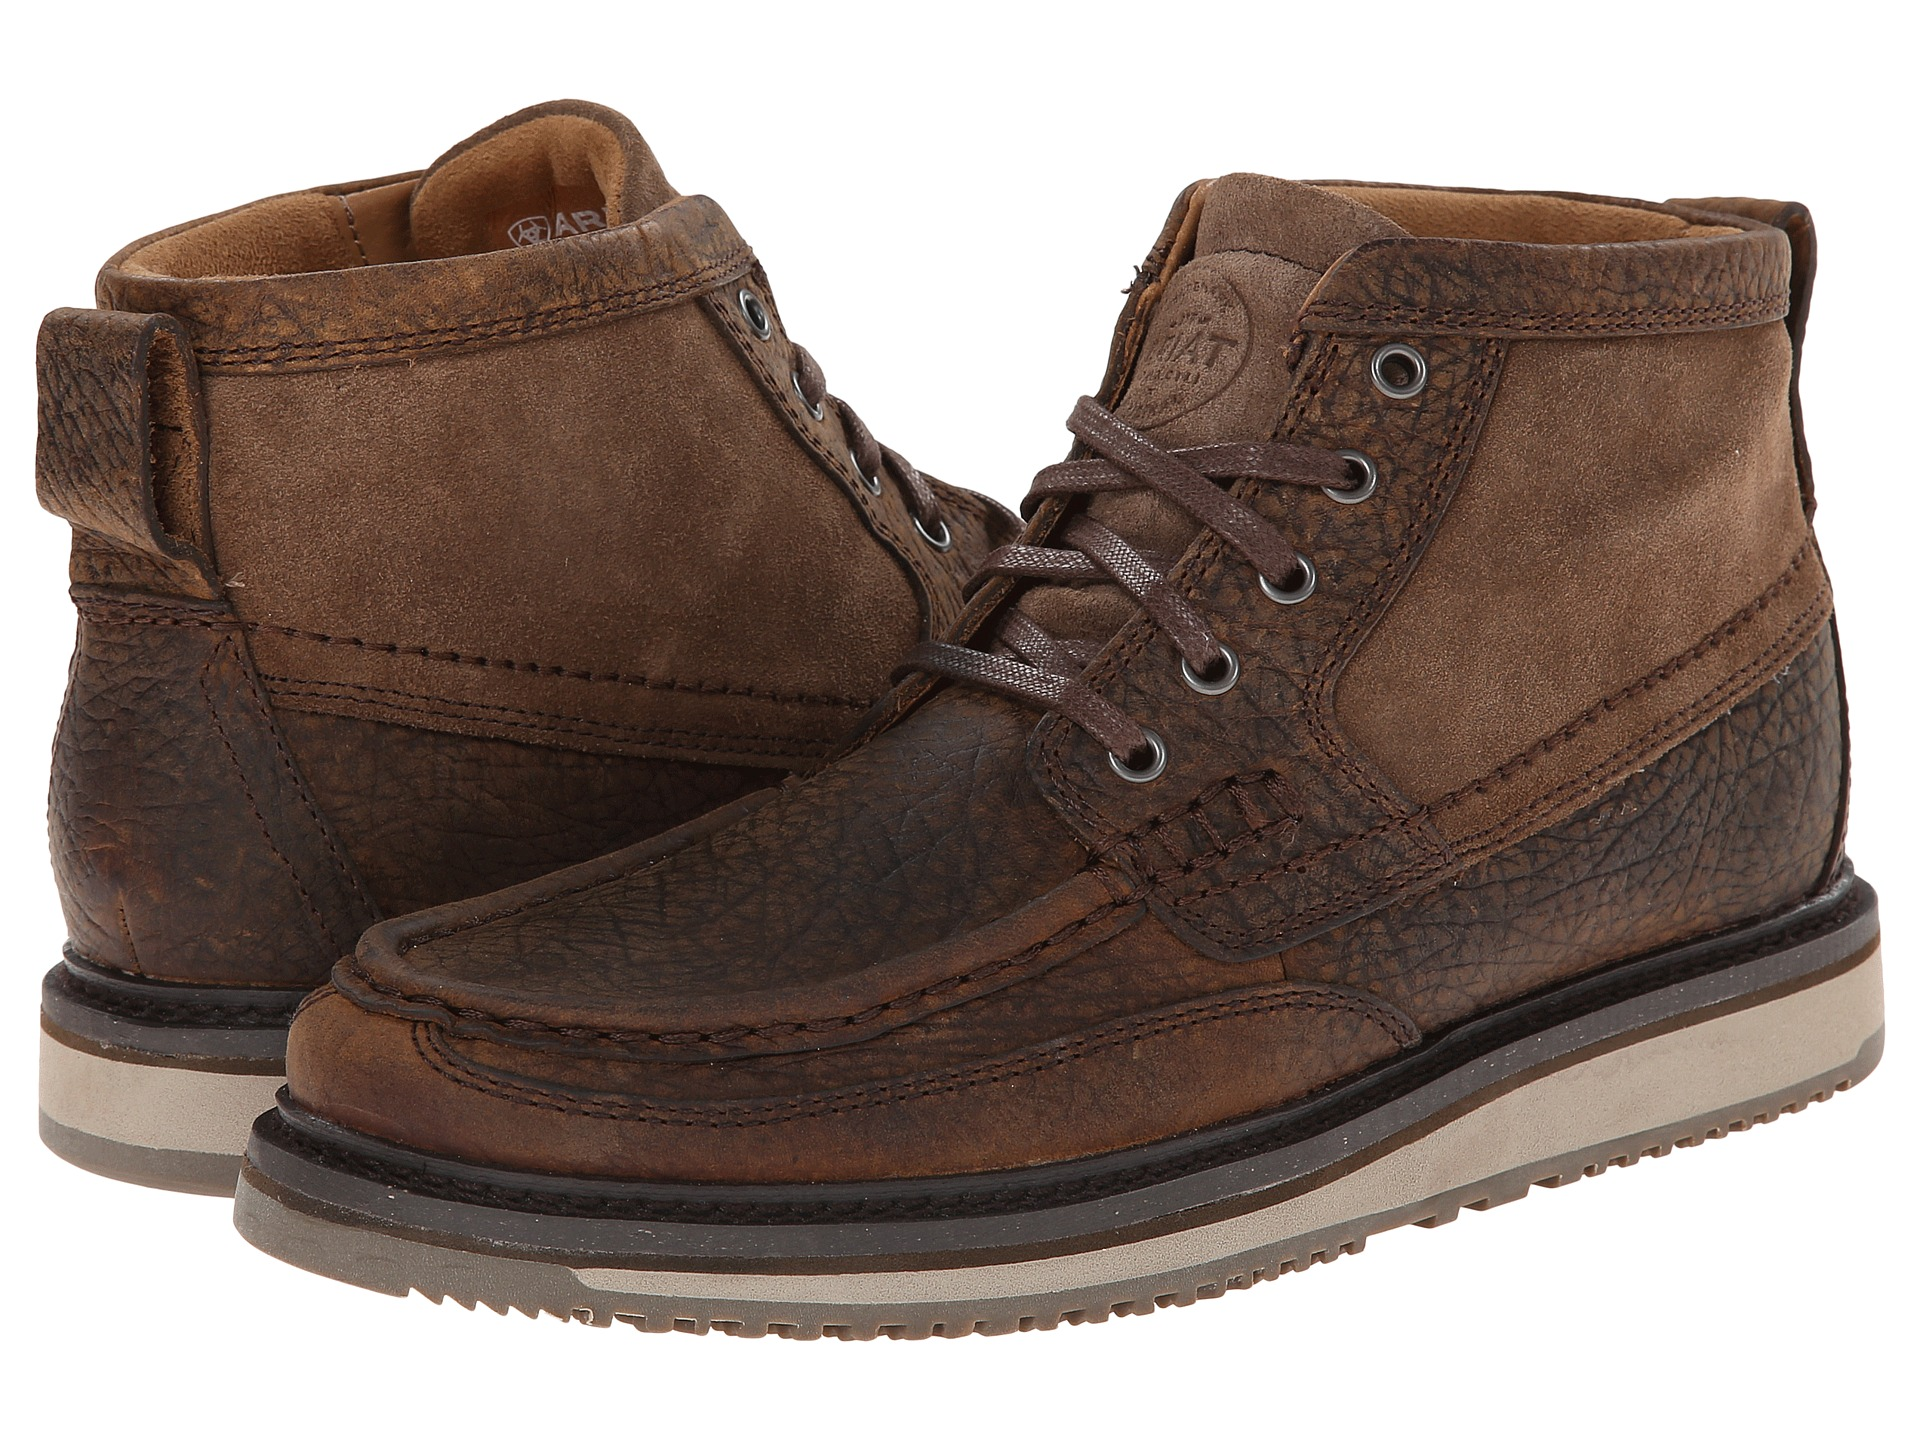 Ariat Lookout at Zappos.com